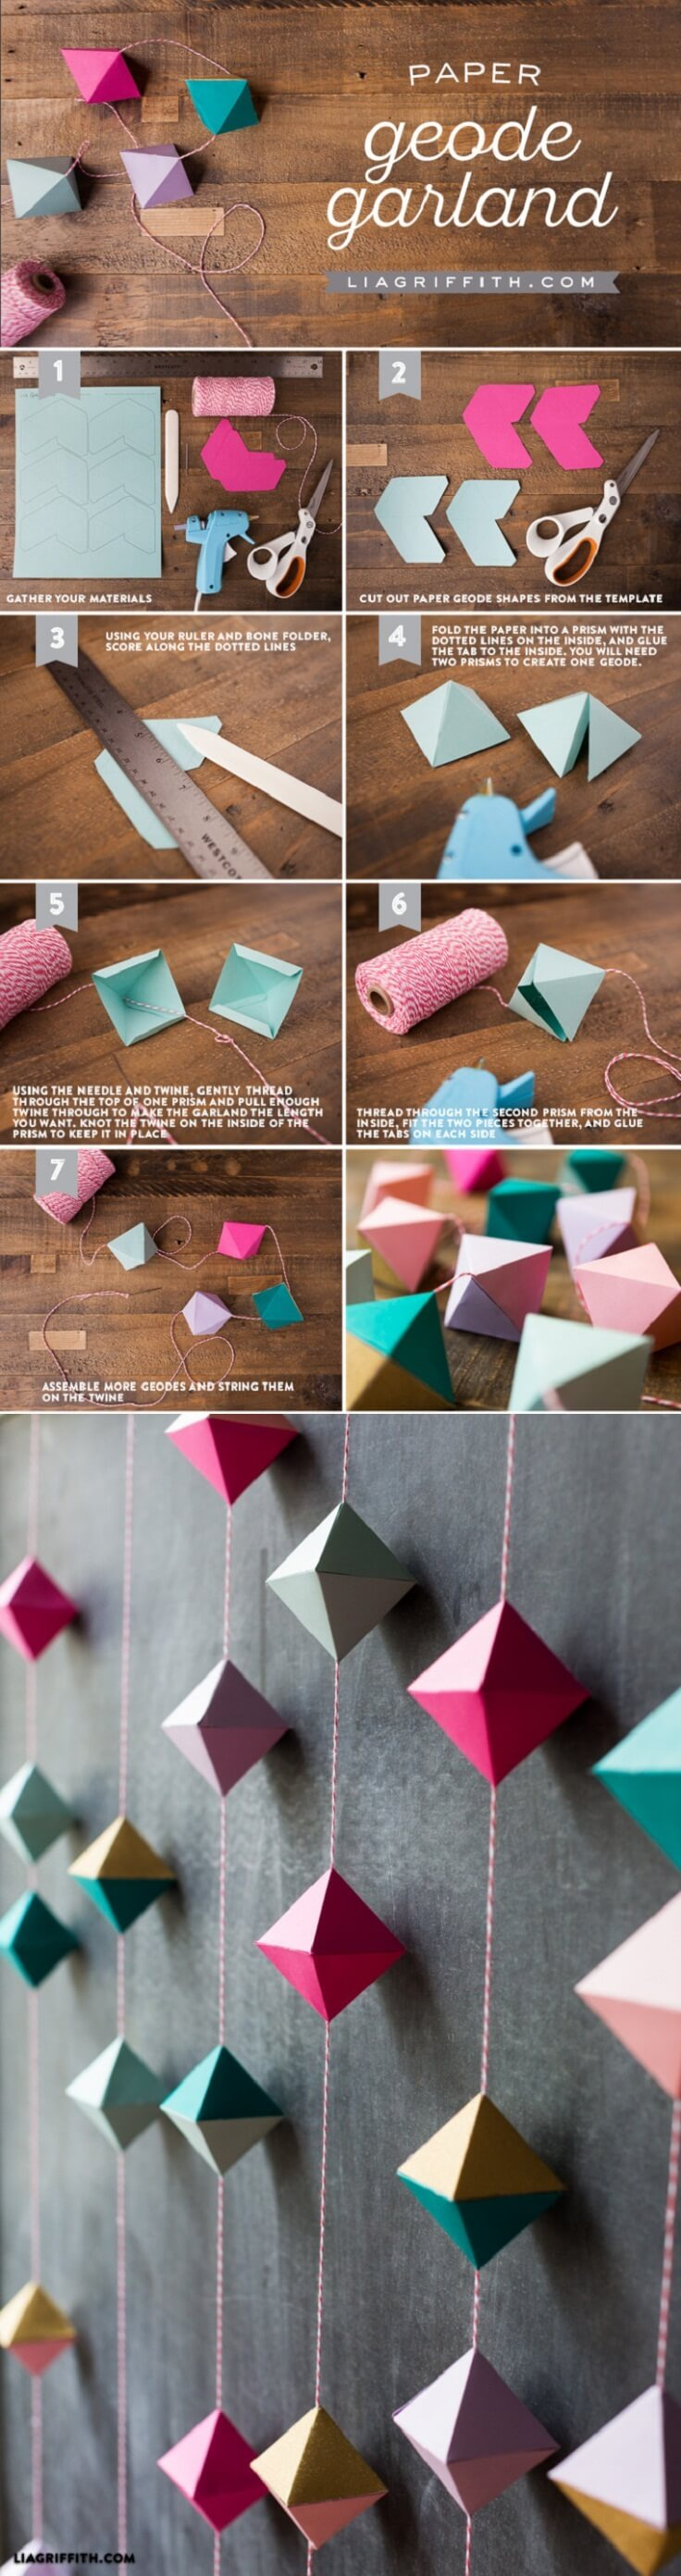 DIY Paper Geode Decorative Garland